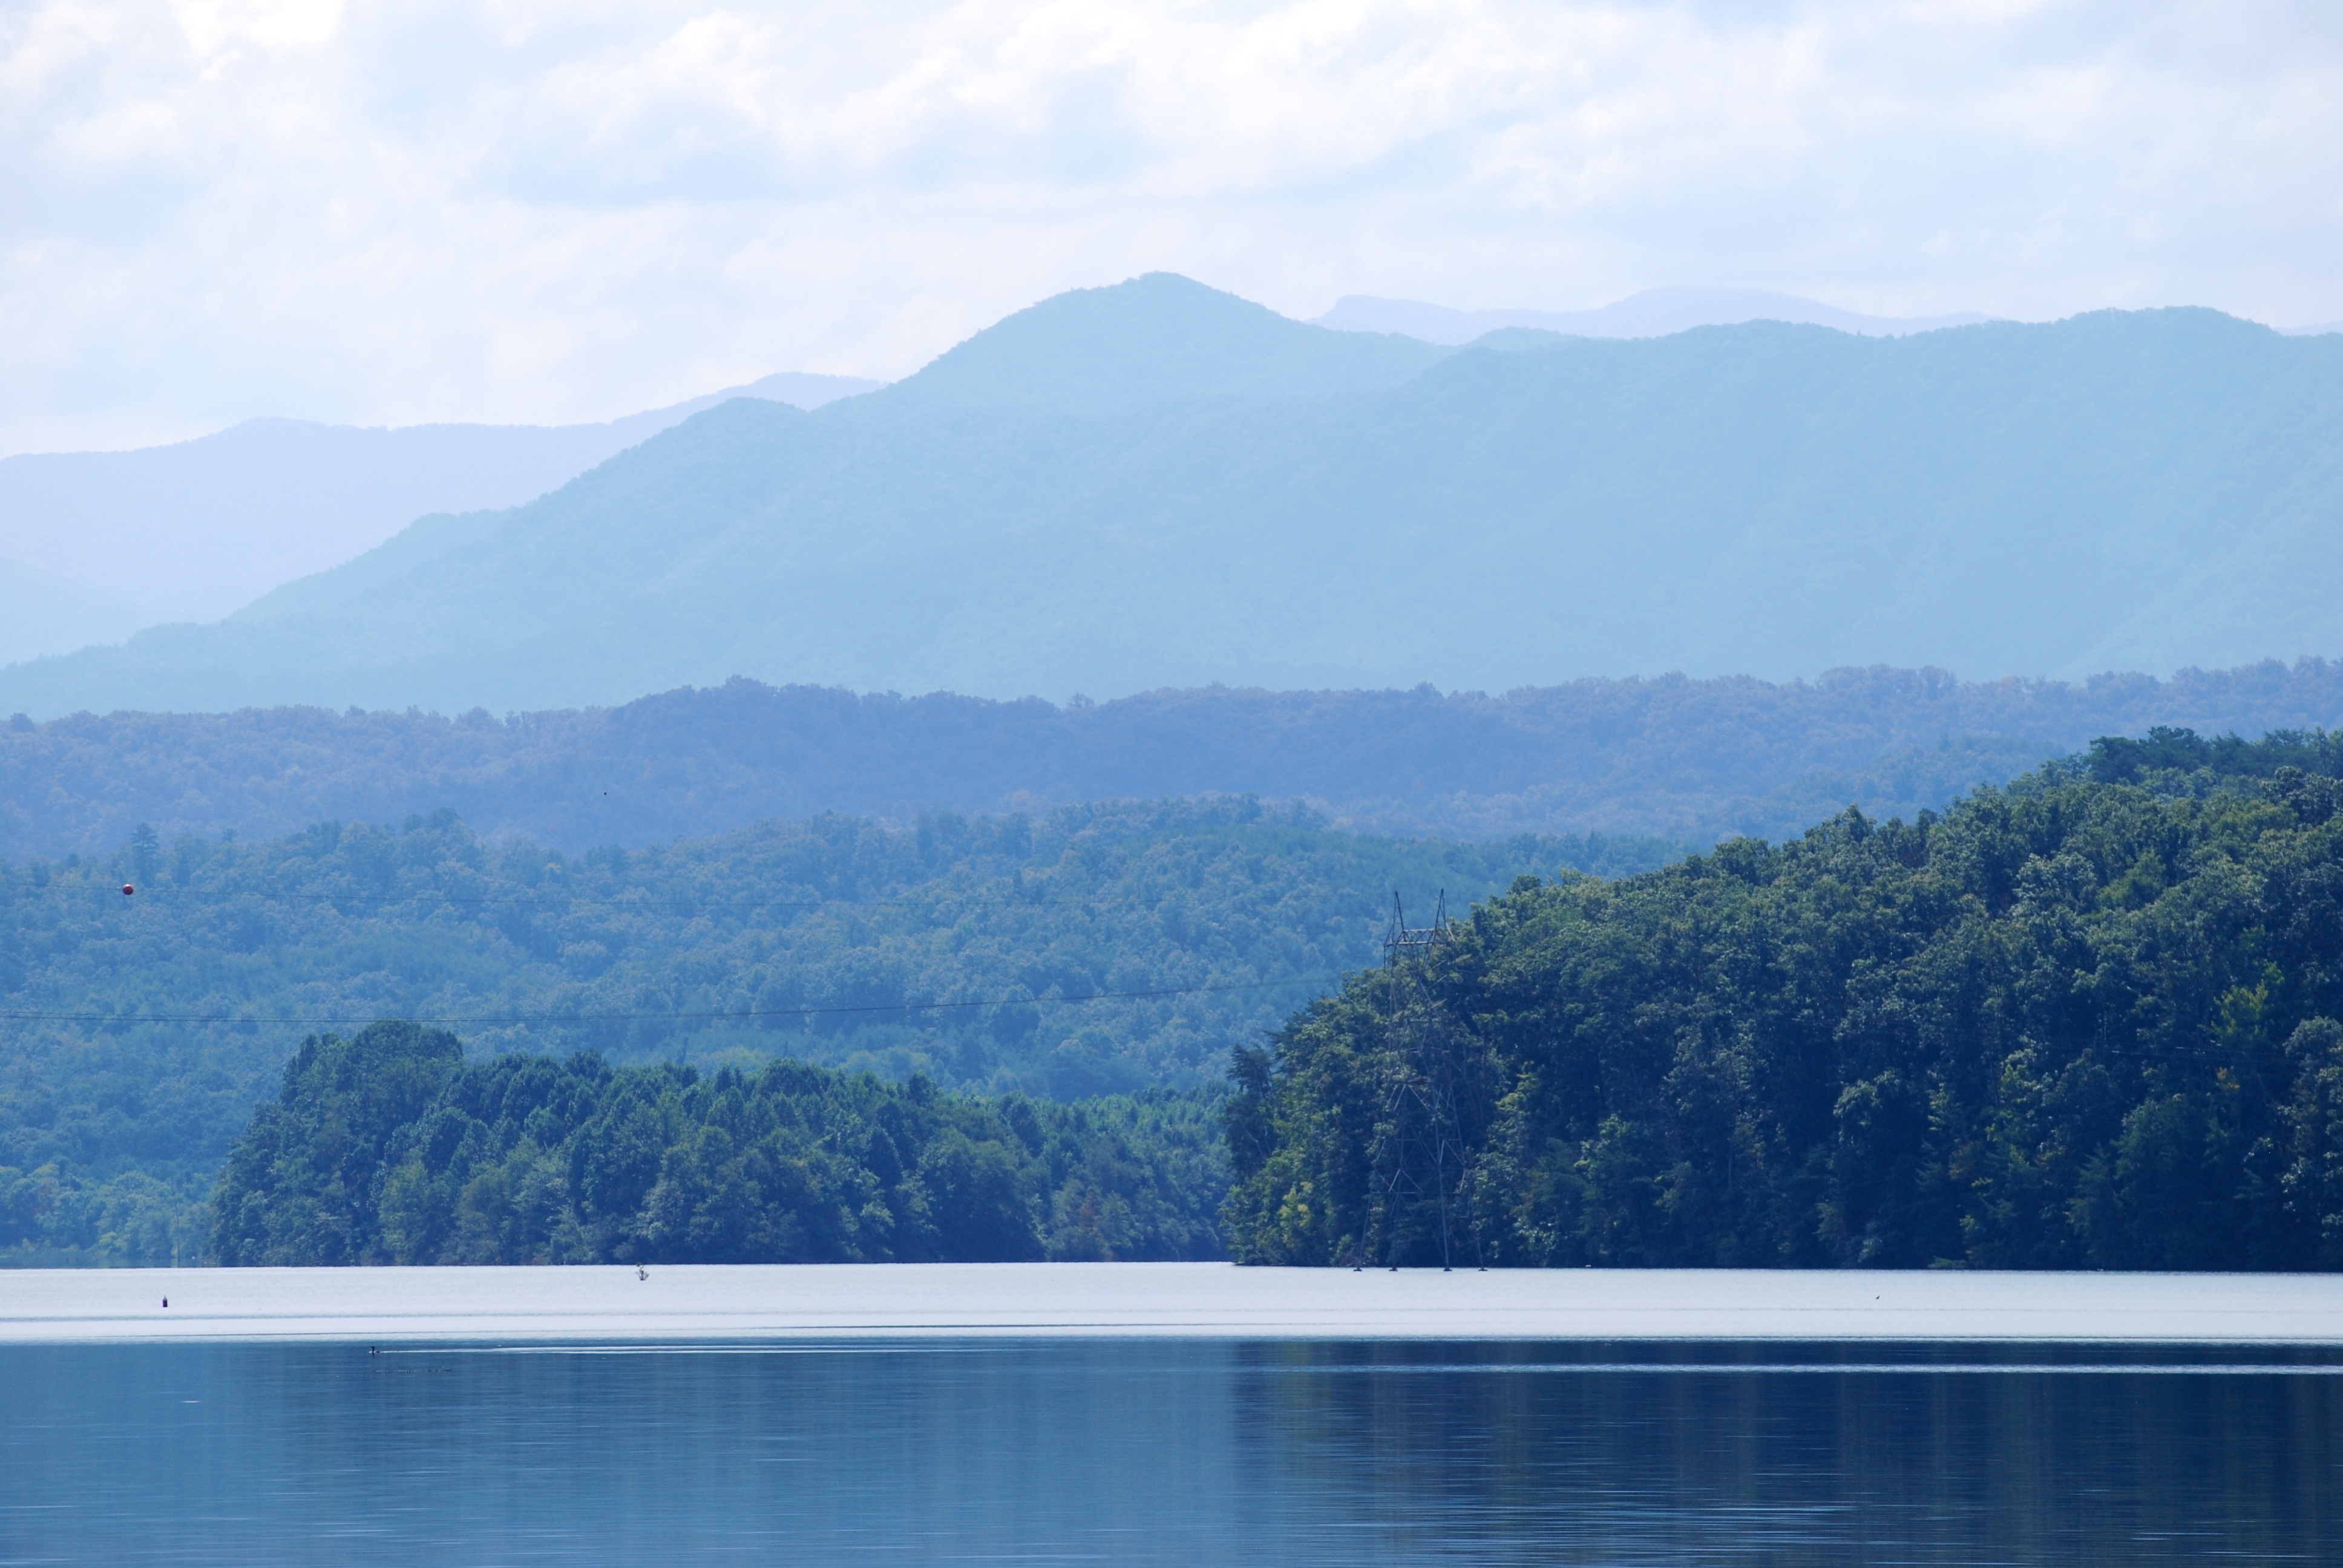 Cruising the tennessee river it is another beautiful day for cruising with little wind and humidity and temperatures in the low 80s on these inland lakes one does not have to worry publicscrutiny Choice Image